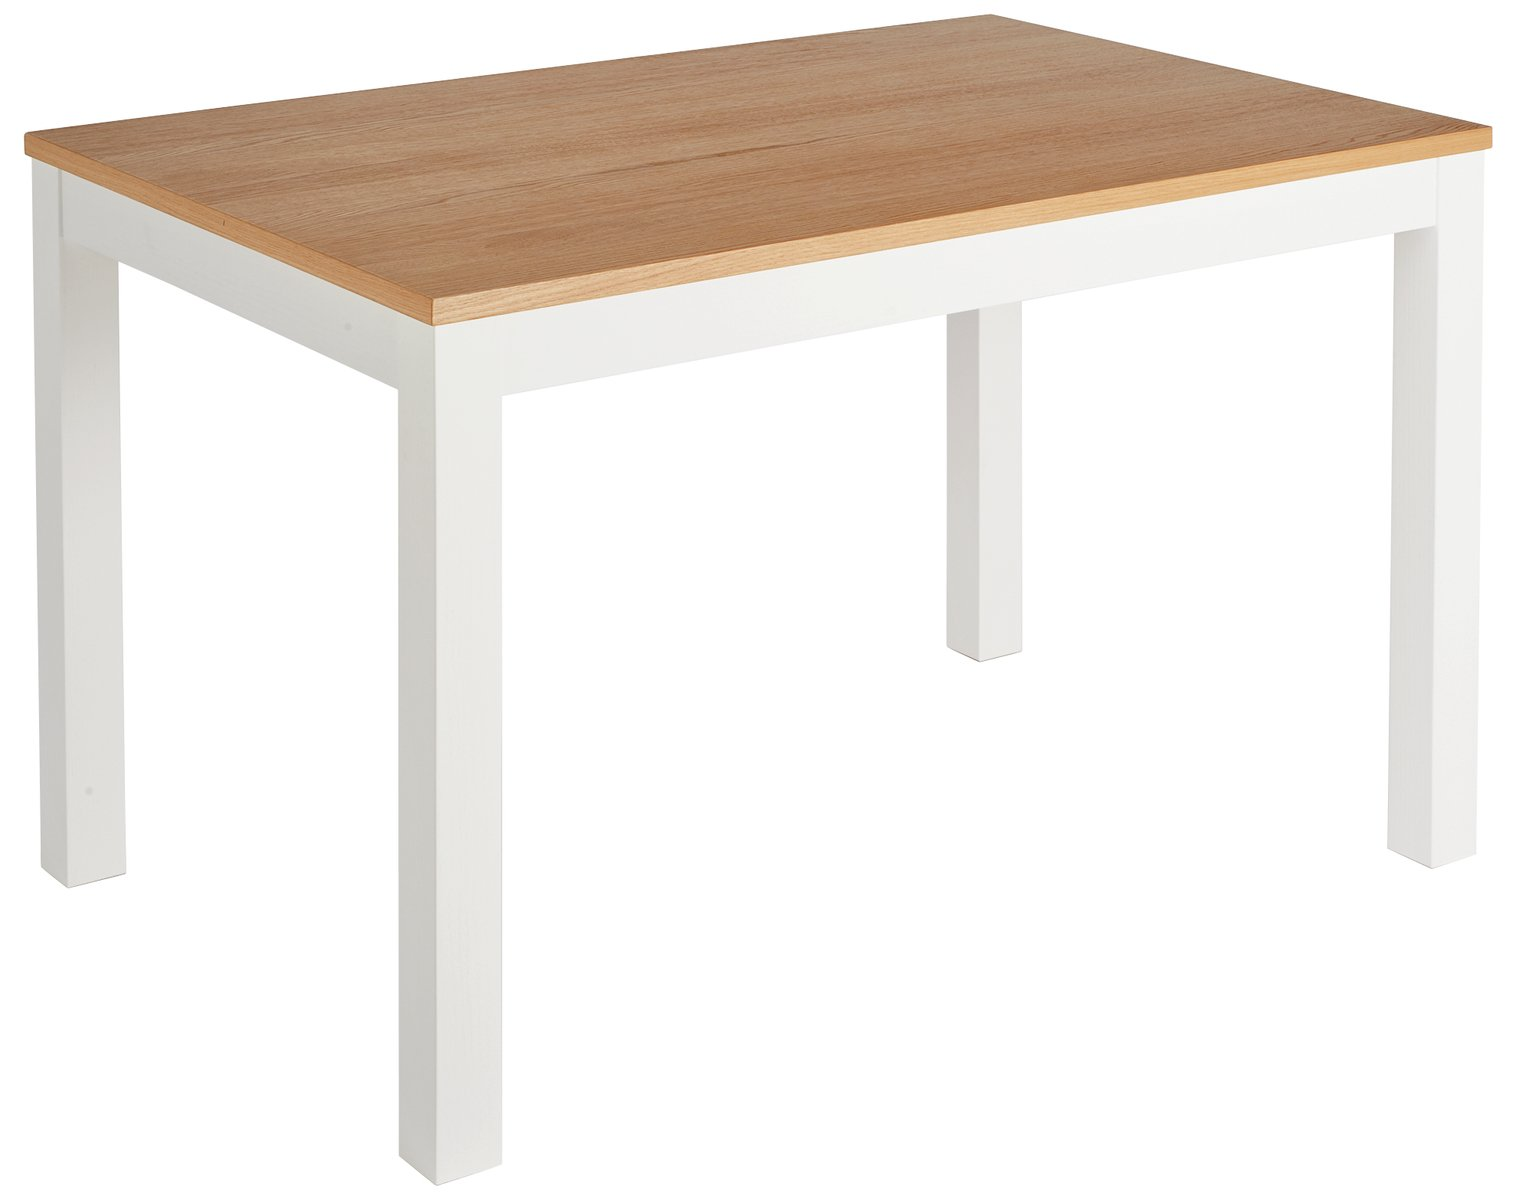 Collection clifton oak veneer 4 seater table two octer for 99 normal table